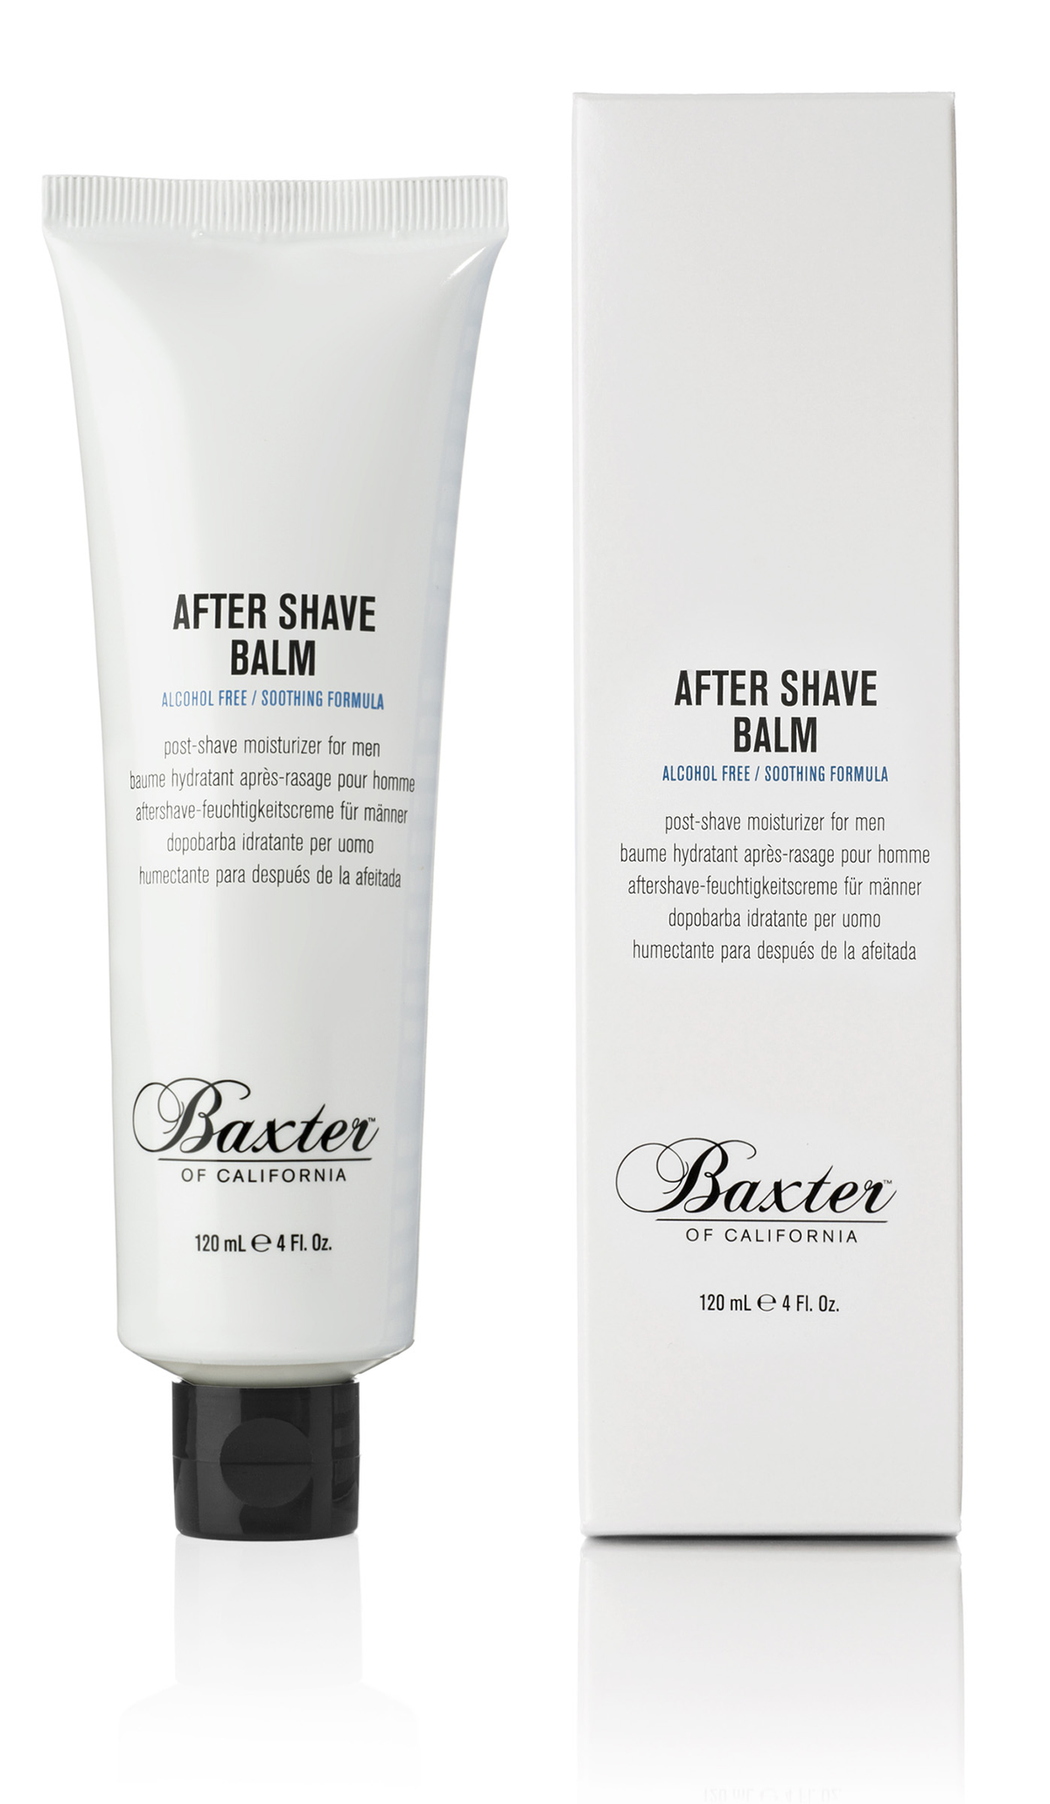 Baxter of California's After Shave Balm